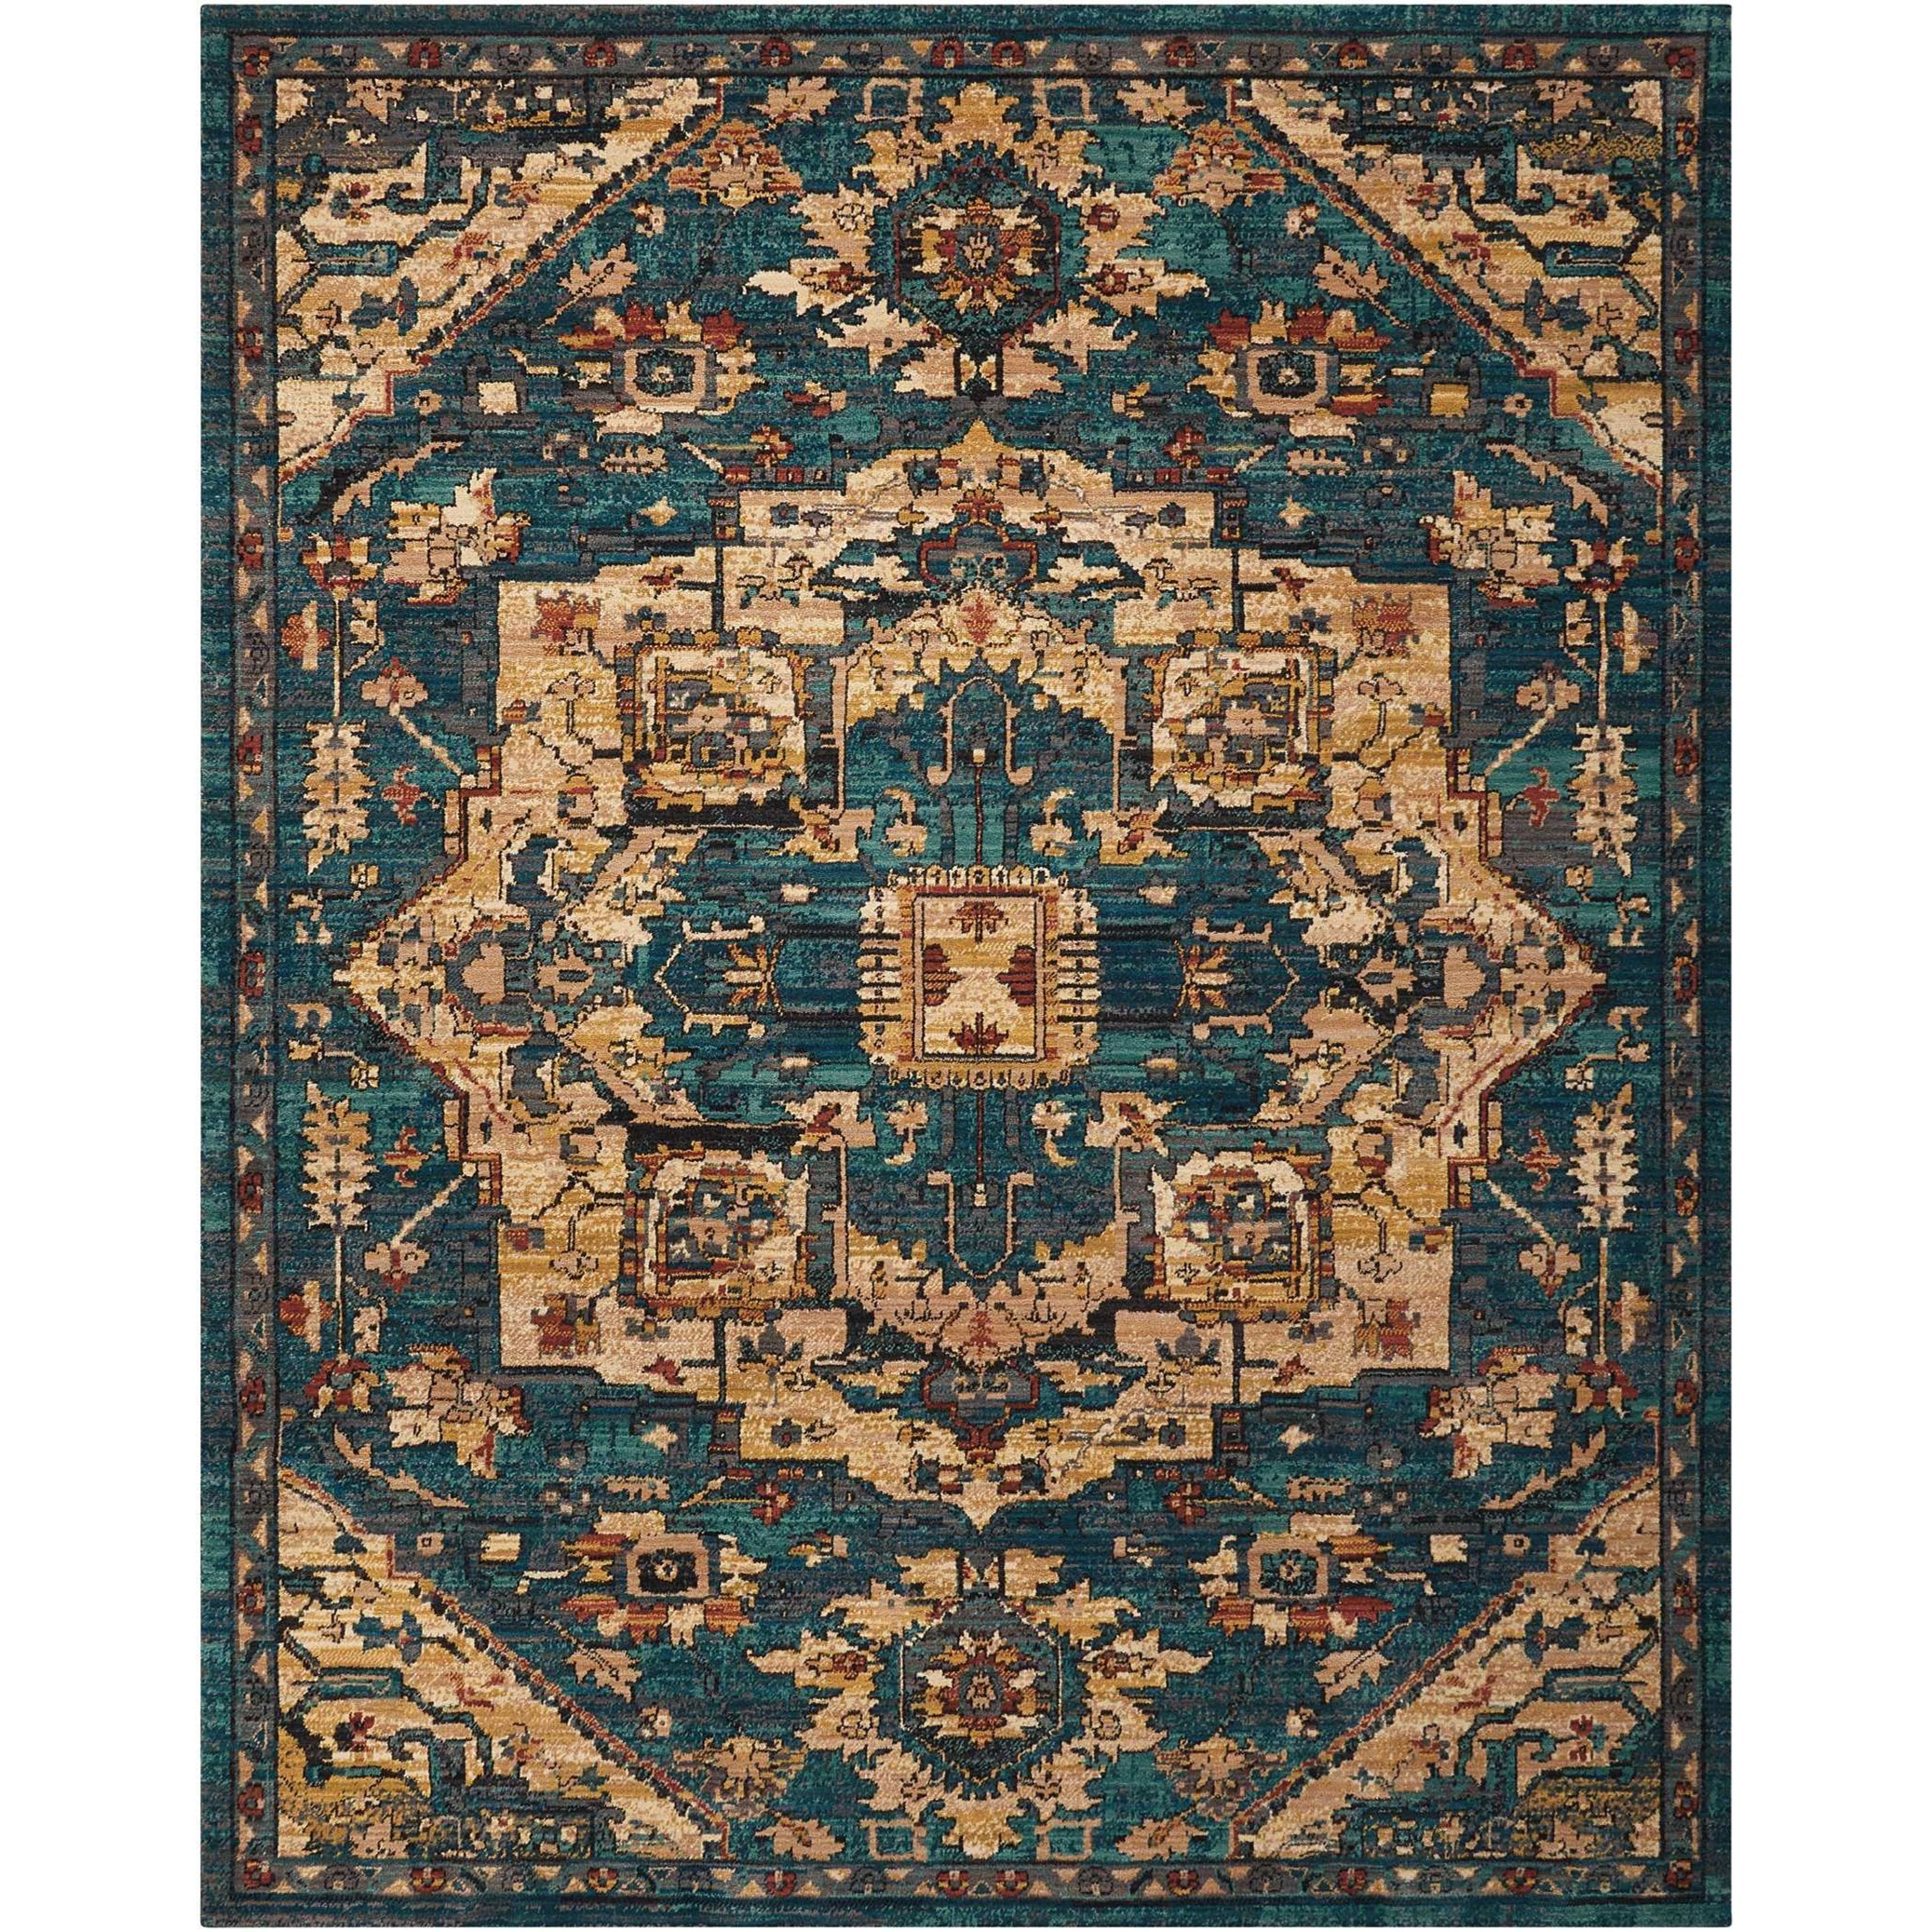 Nourison 2020 12' X 15' Teal Rug by Nourison at Home Collections Furniture